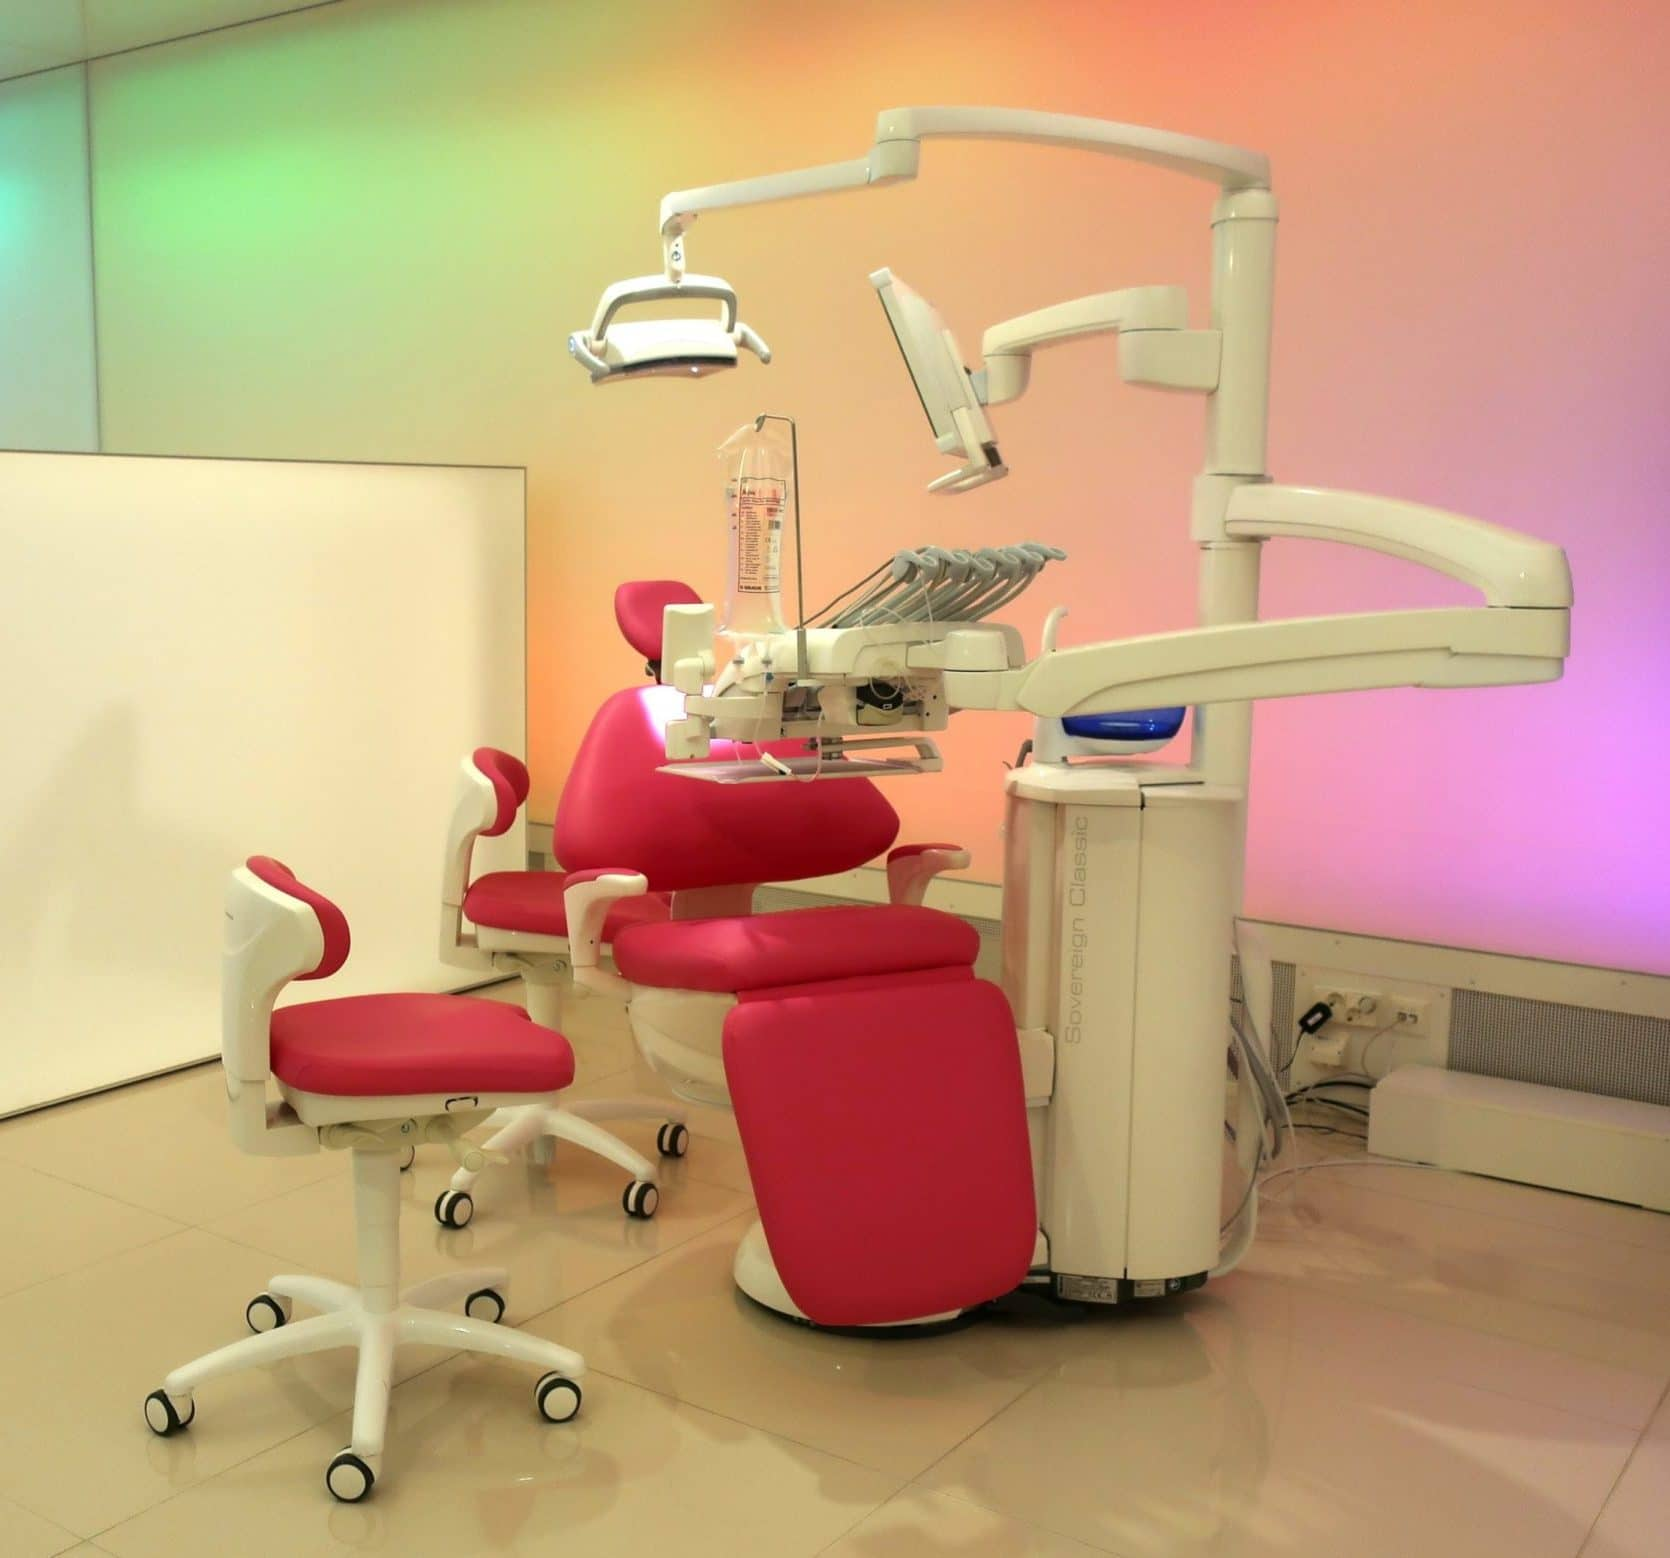 Medical Device Planmeca Dental 6